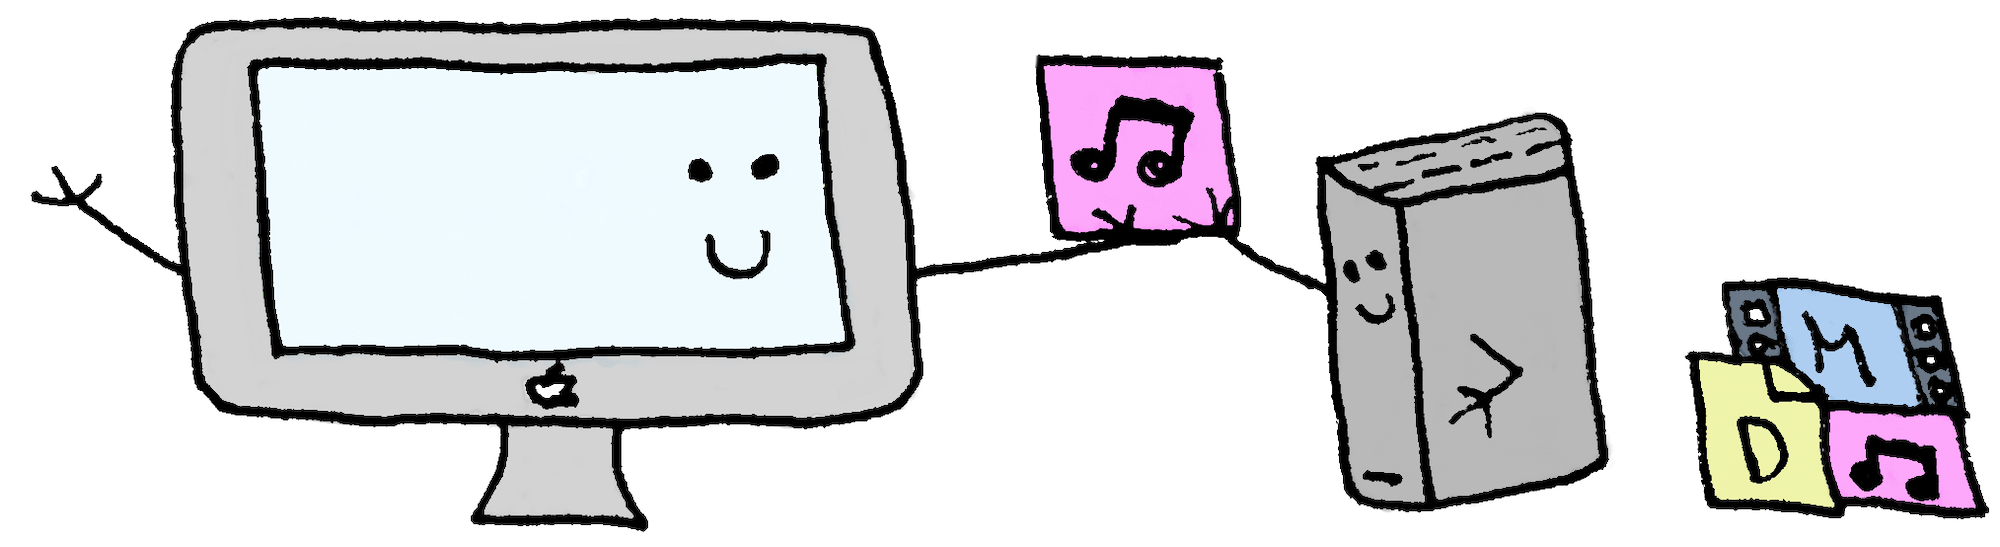 A cartoon depicting a smiling computer passing files to his external hard drive buddy for safe keeping